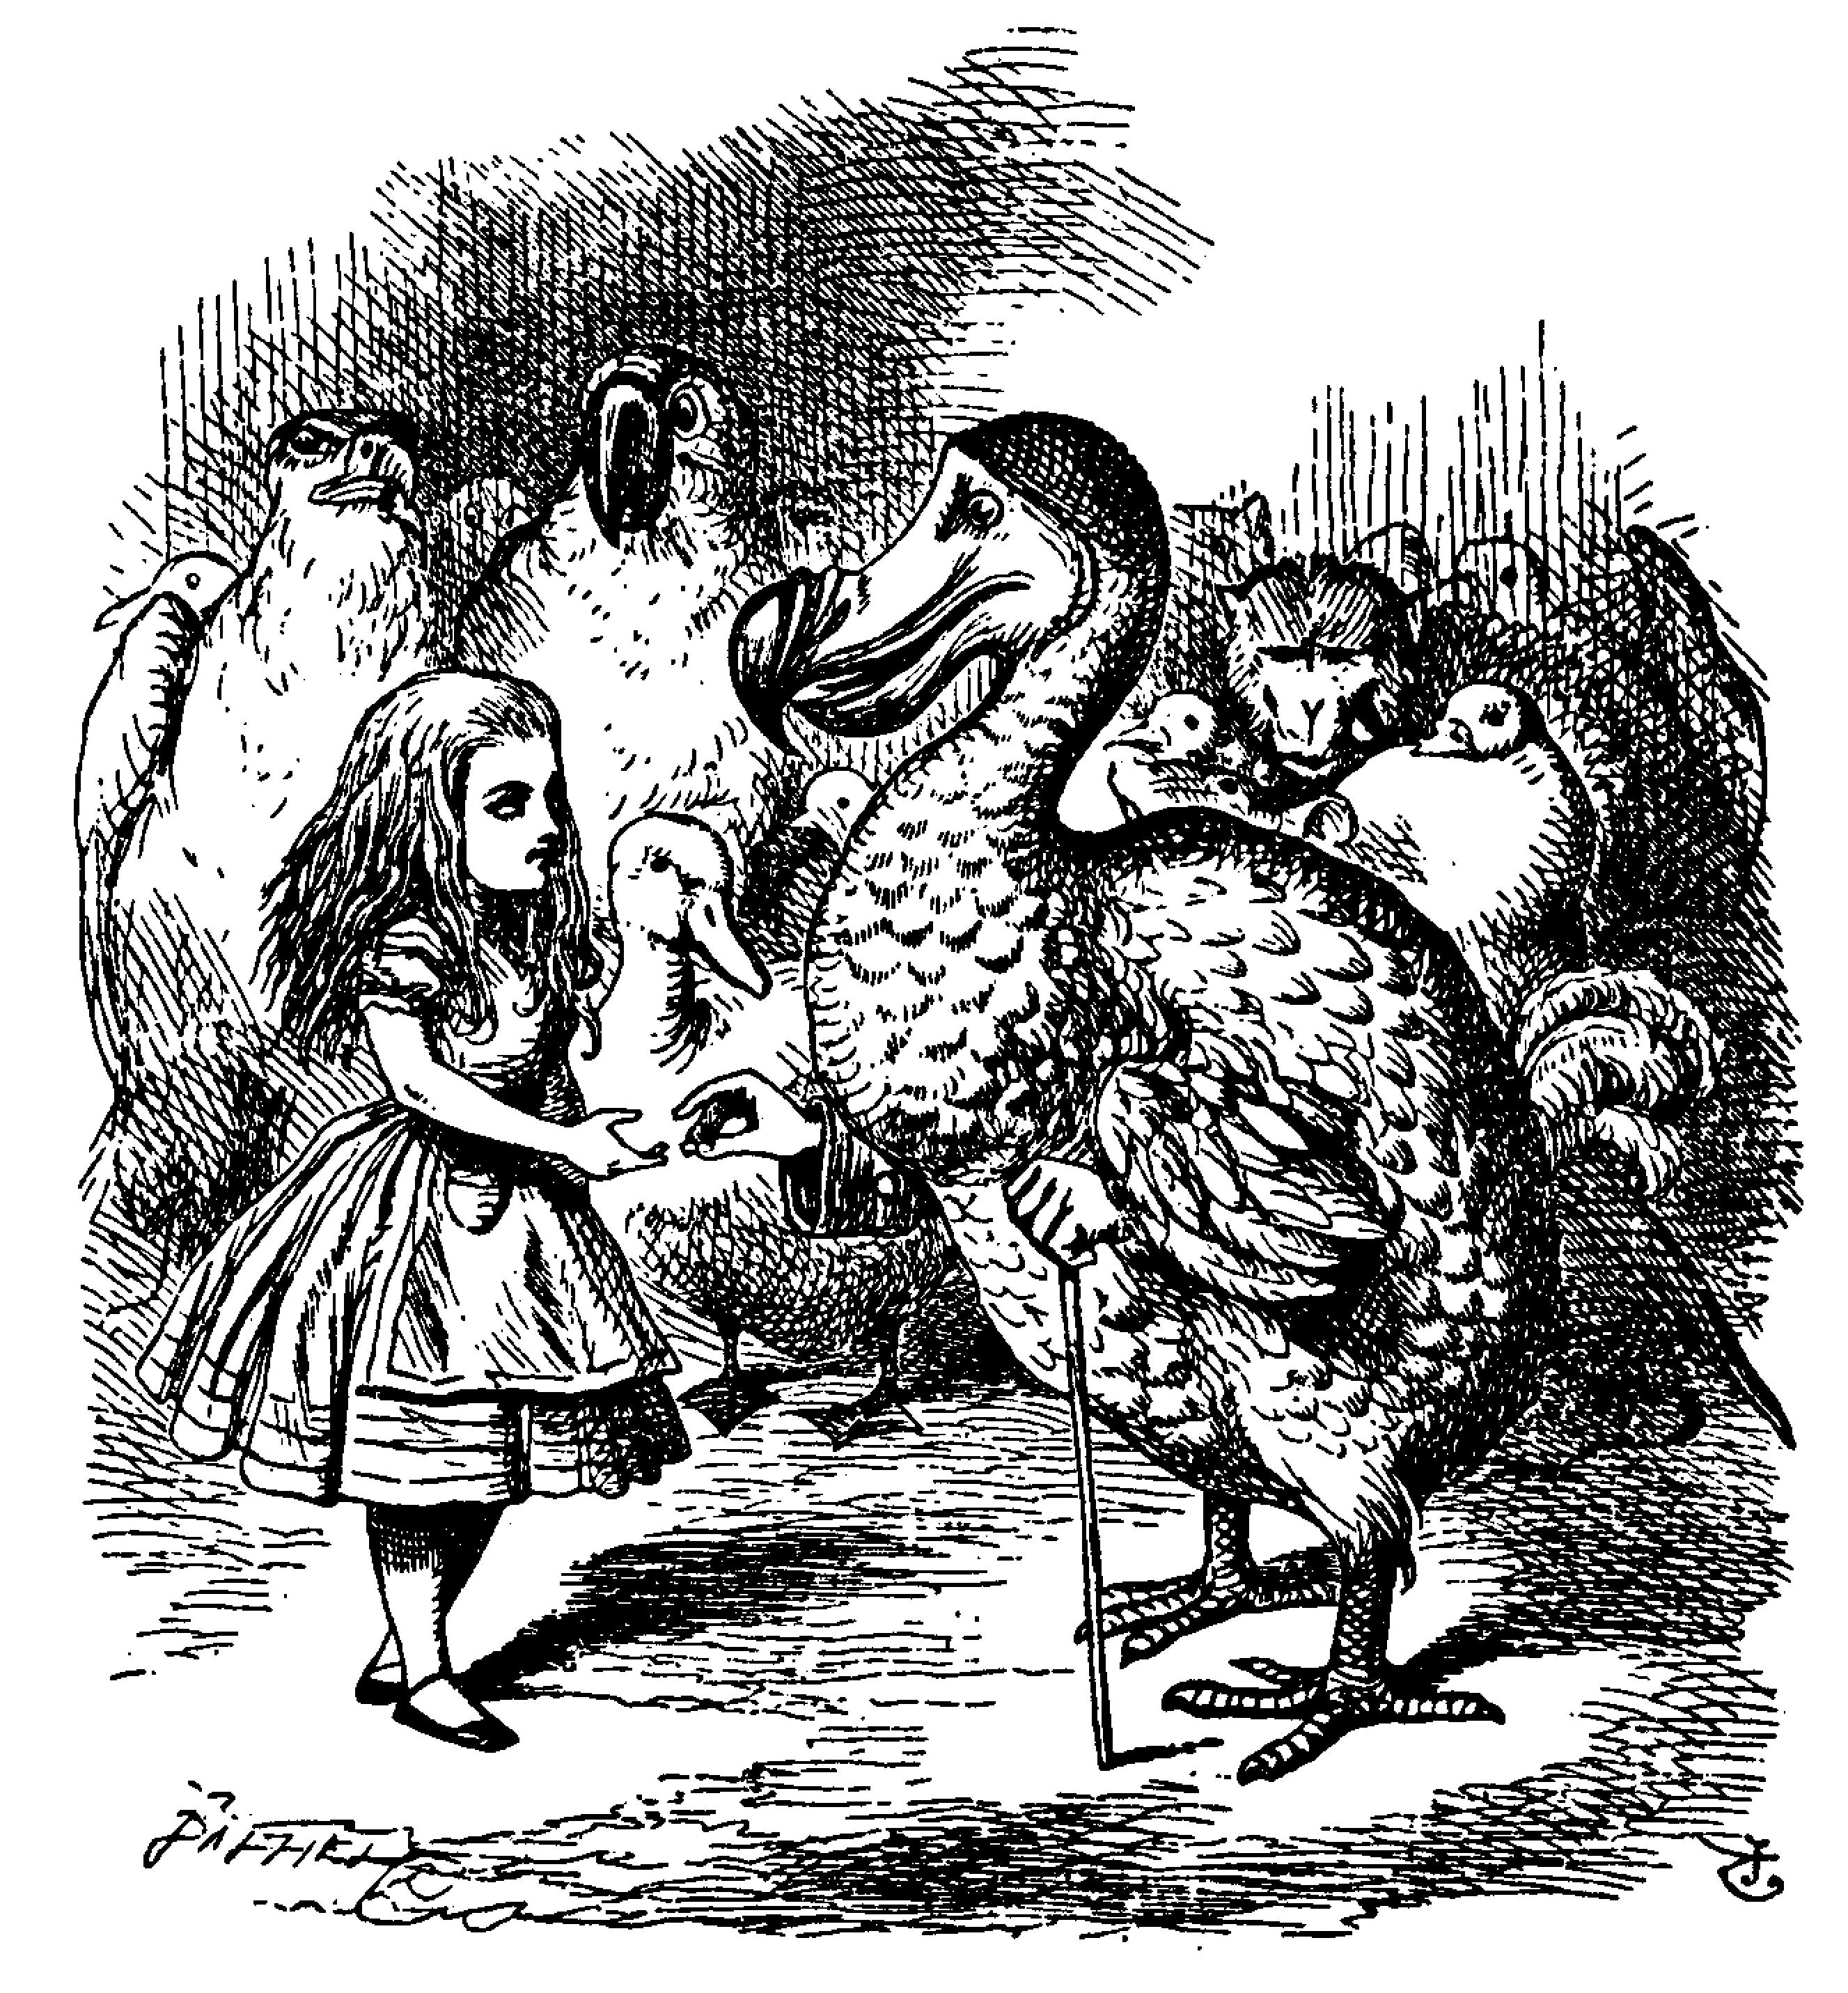 an interpretation of lewis carolls alice in wonderland She generally gave herself very good advice, (though she very seldom followed it) lewis carroll, alice's adventures in wonderland & through the looking-glass.